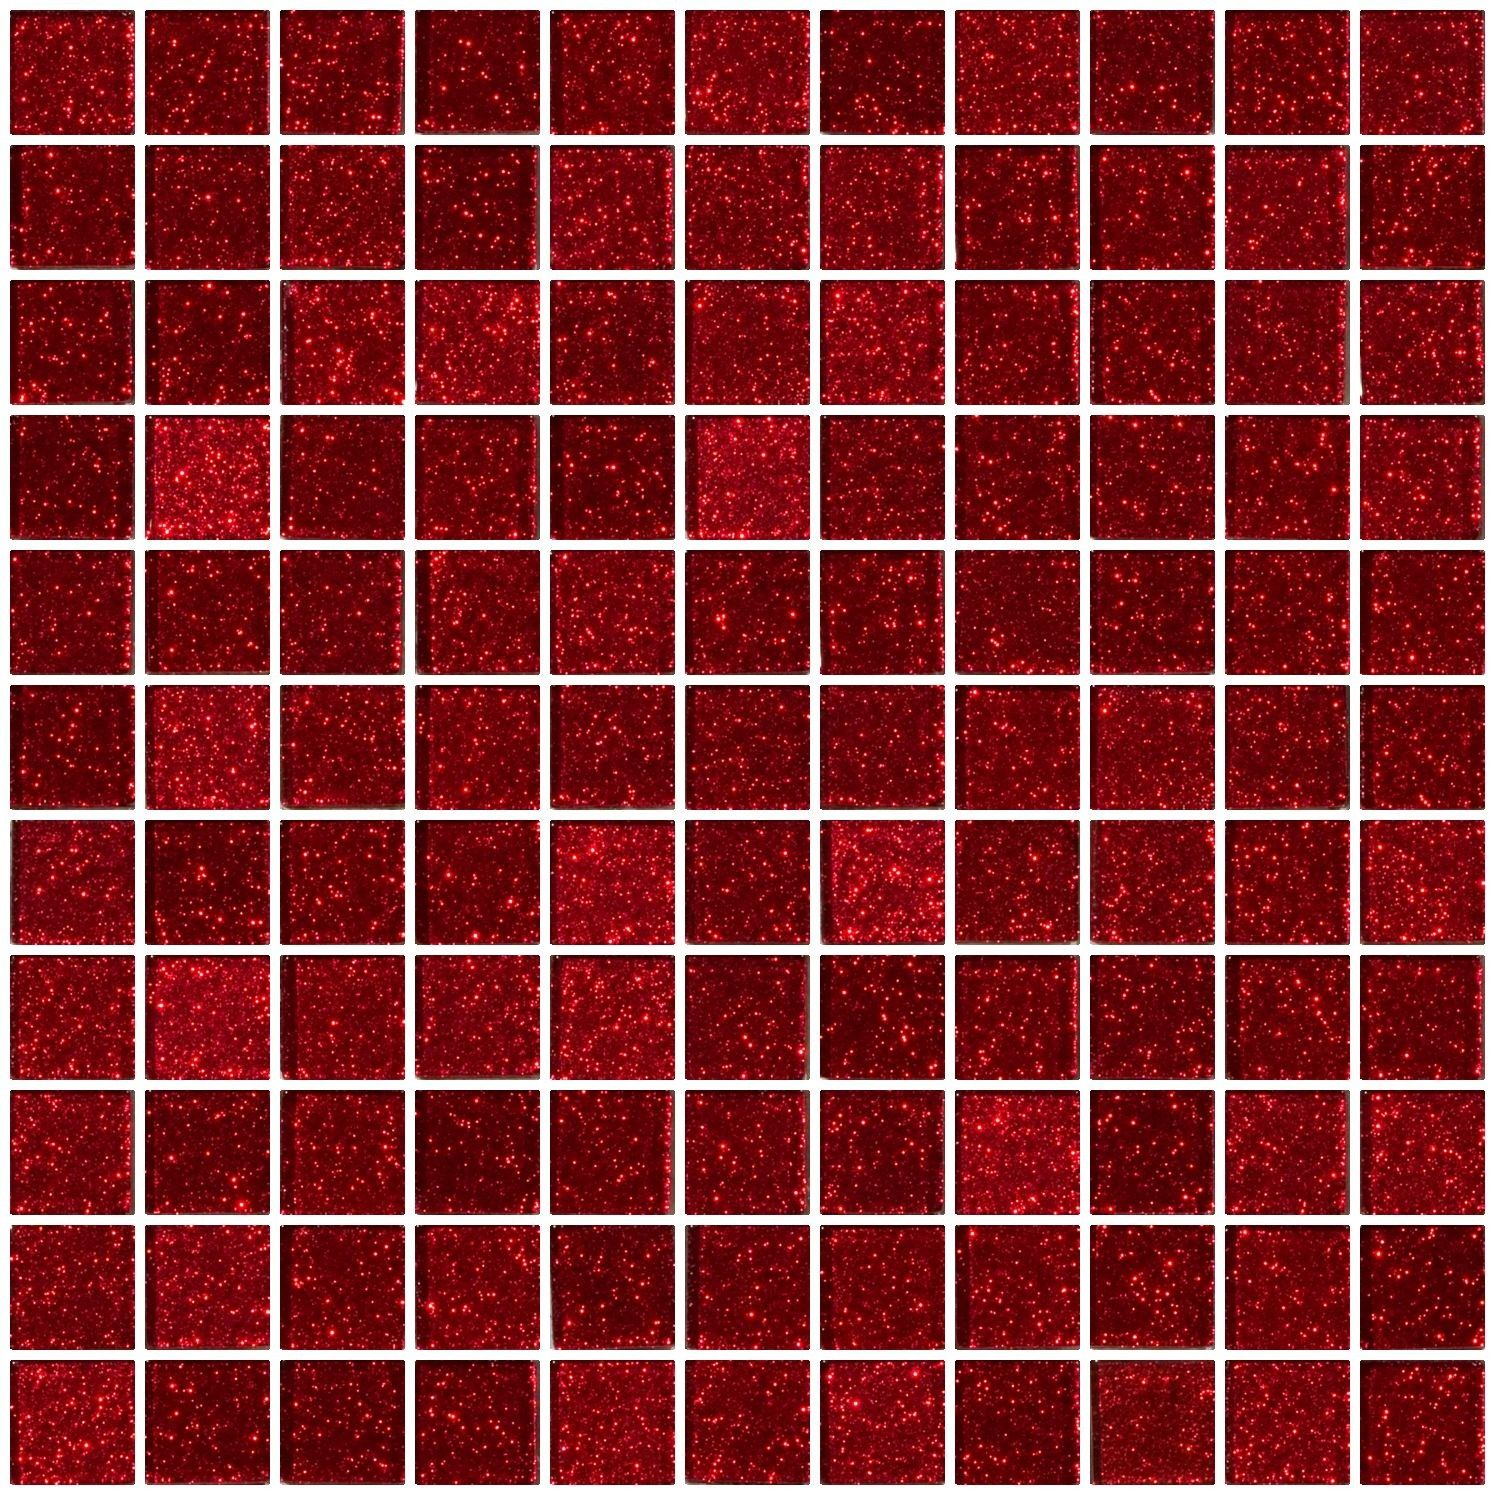 1 Inch Red Glitter Glass Tile Susan Jablon Glass Tile